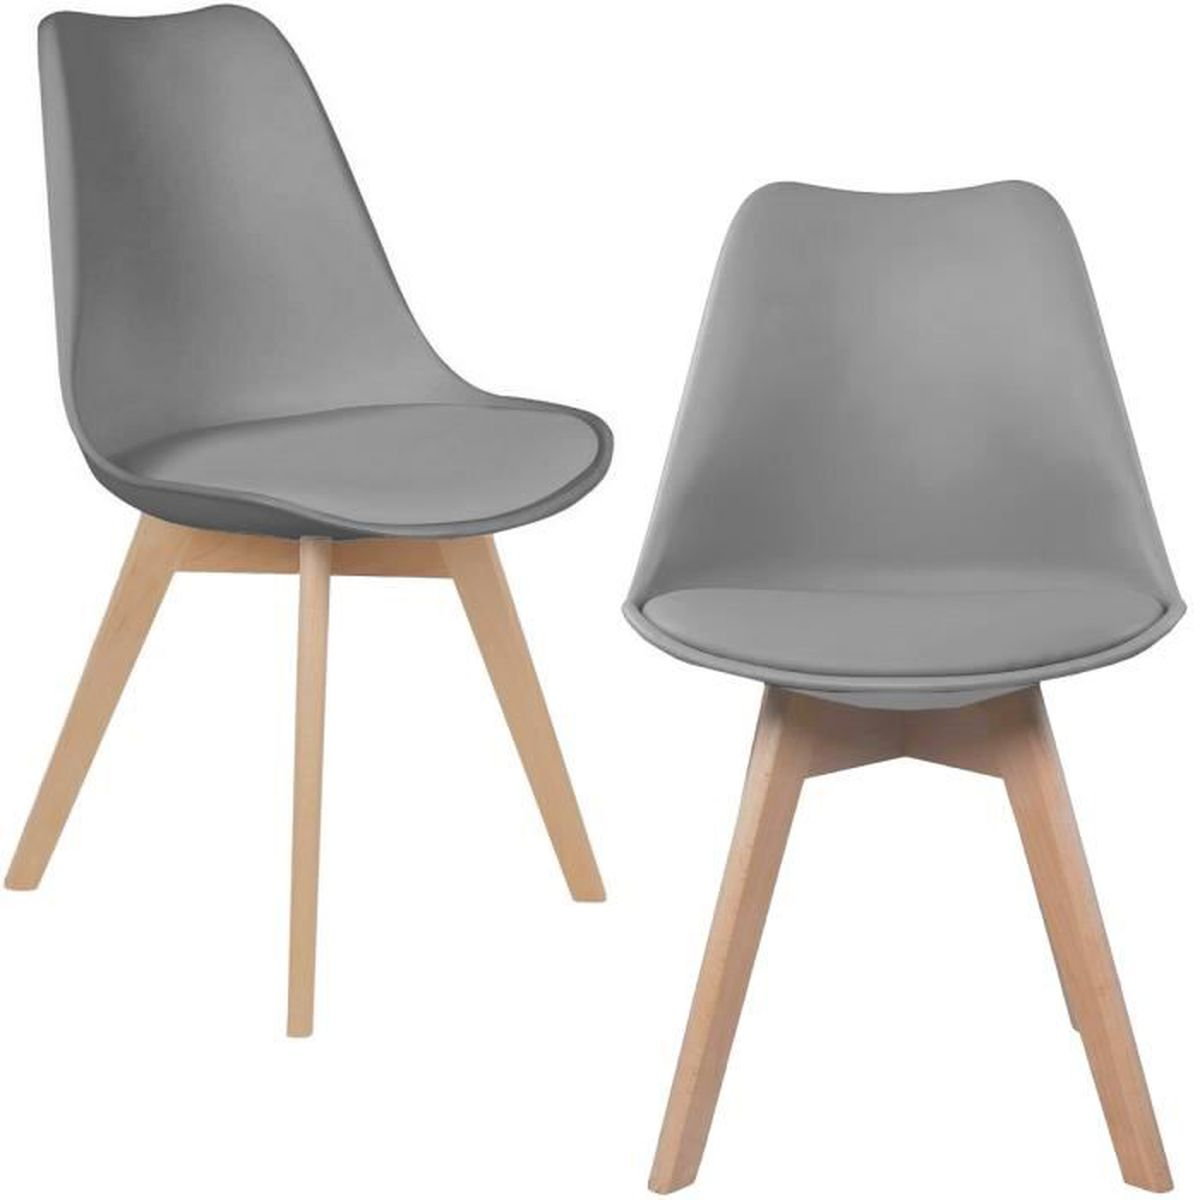 Ensemble chaises scandinave achat vente ensemble for Chaise scandinave pas cher